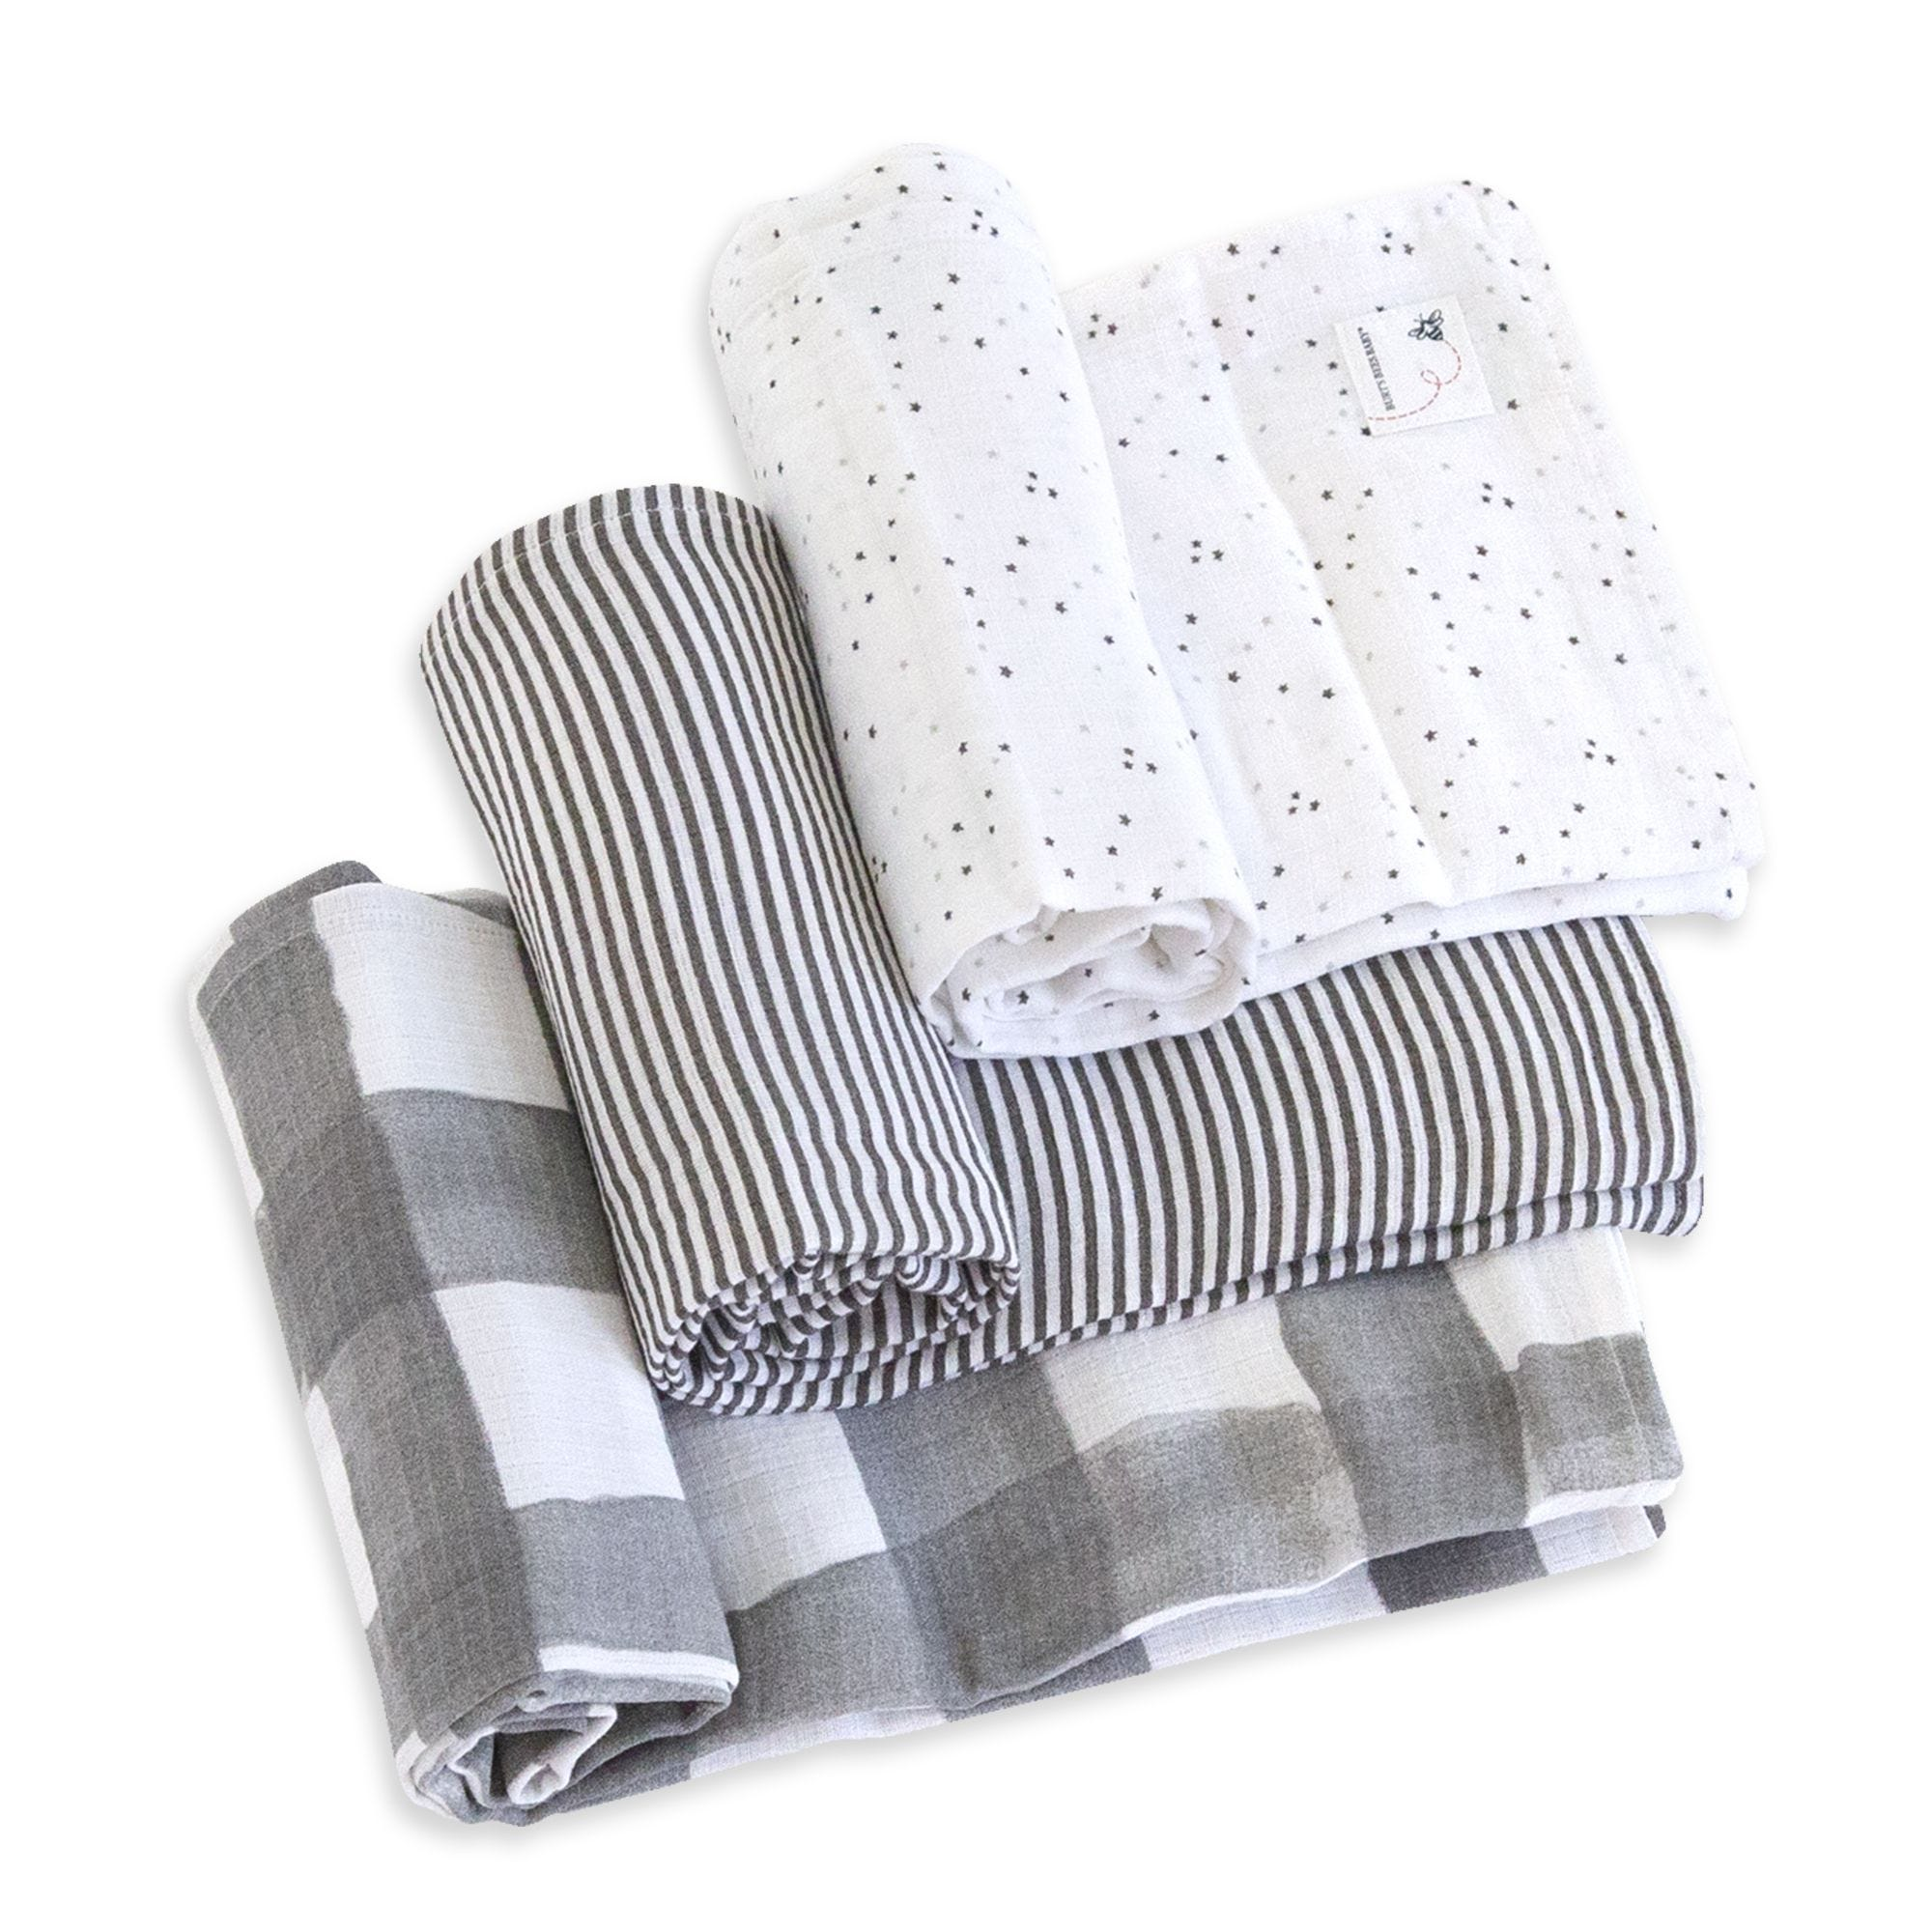 d88ae61a4ee93 Watercolor Starry Eyes Organic Cotton Woven Muslin Baby Swaddle Blankets 3  Pack